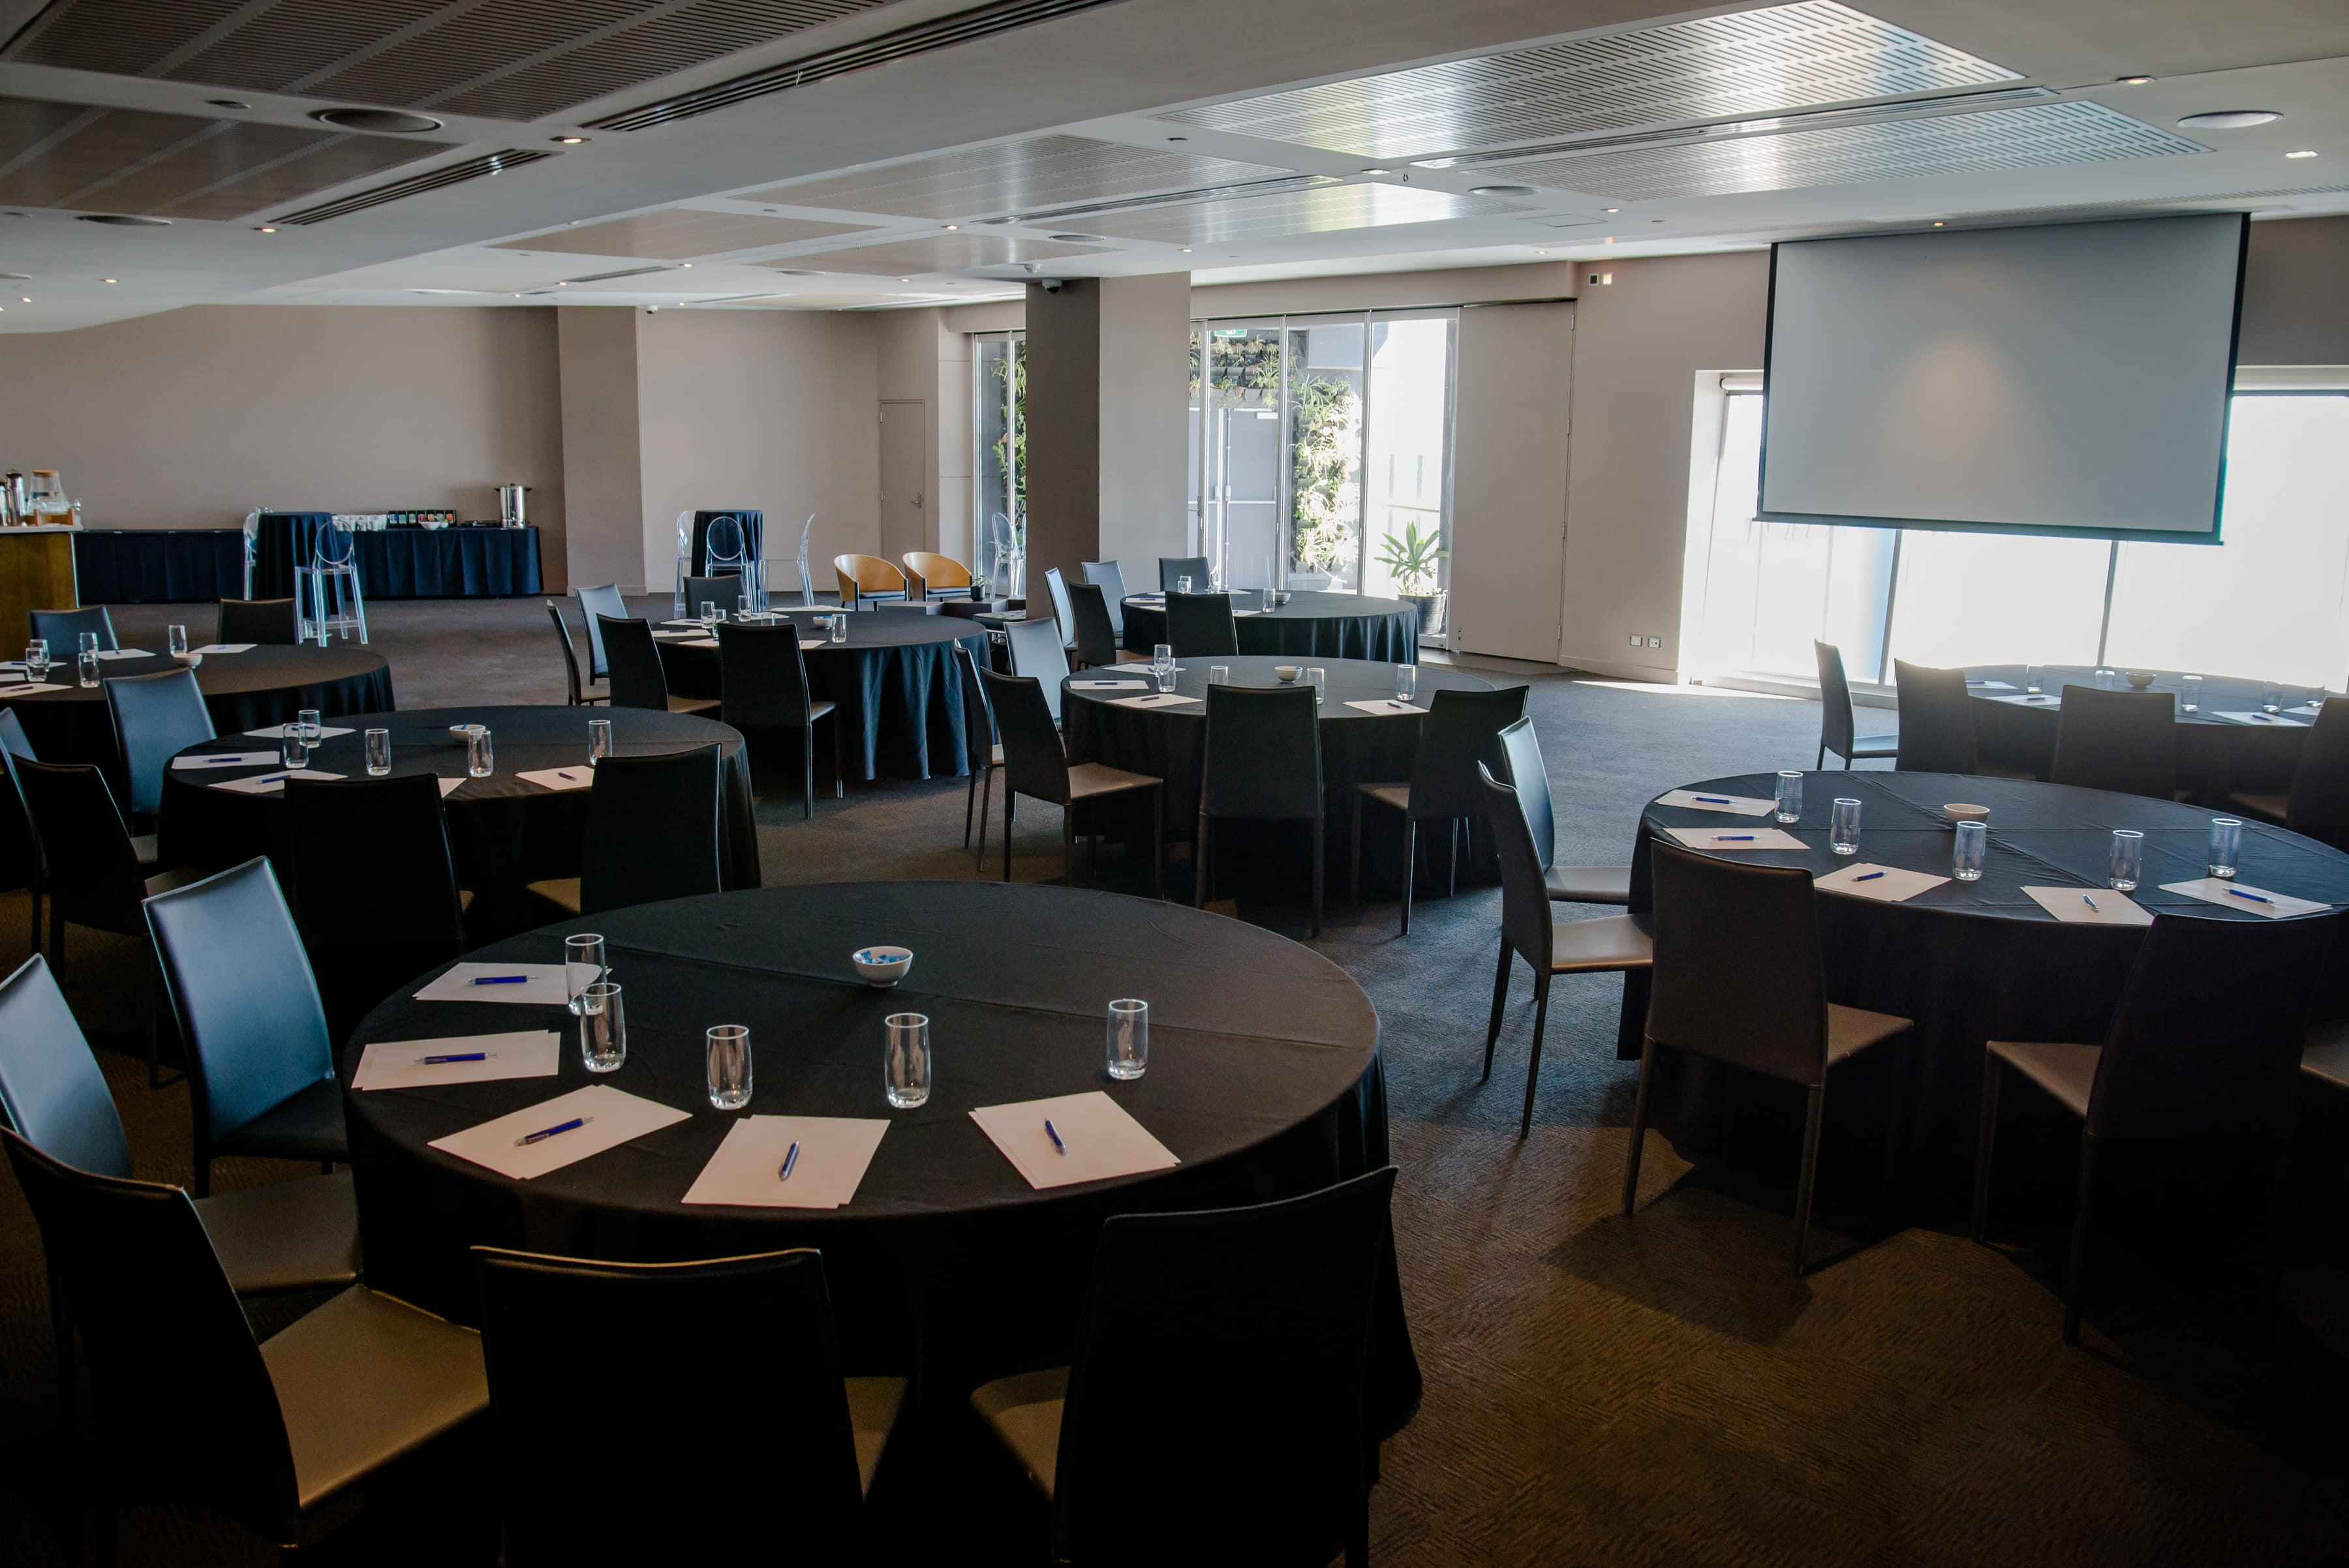 adelaide corporate event with tech facilities